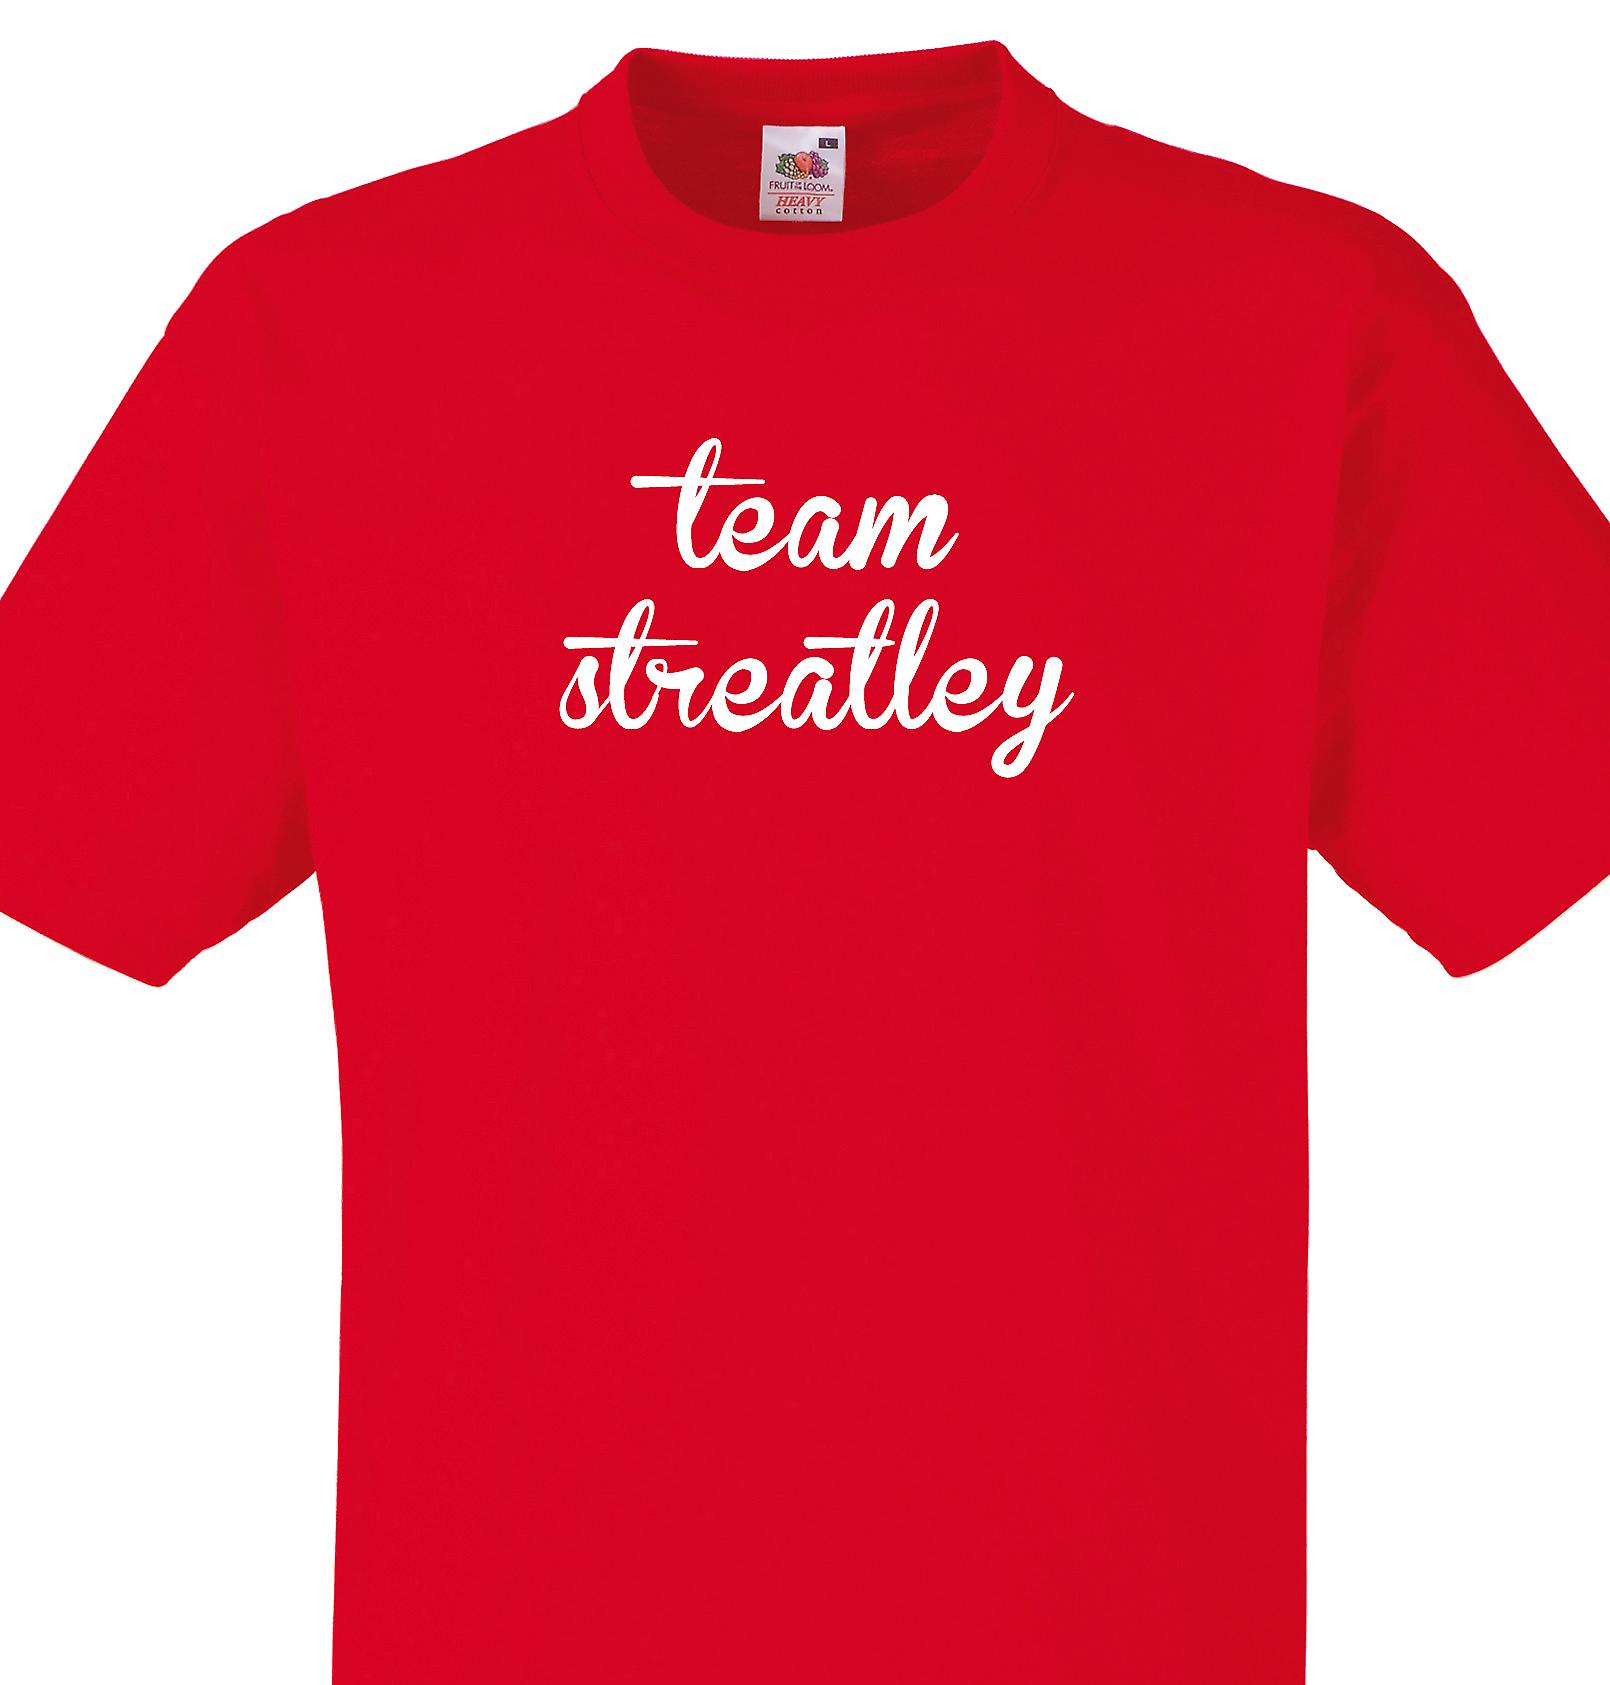 Team Streatley Red T shirt